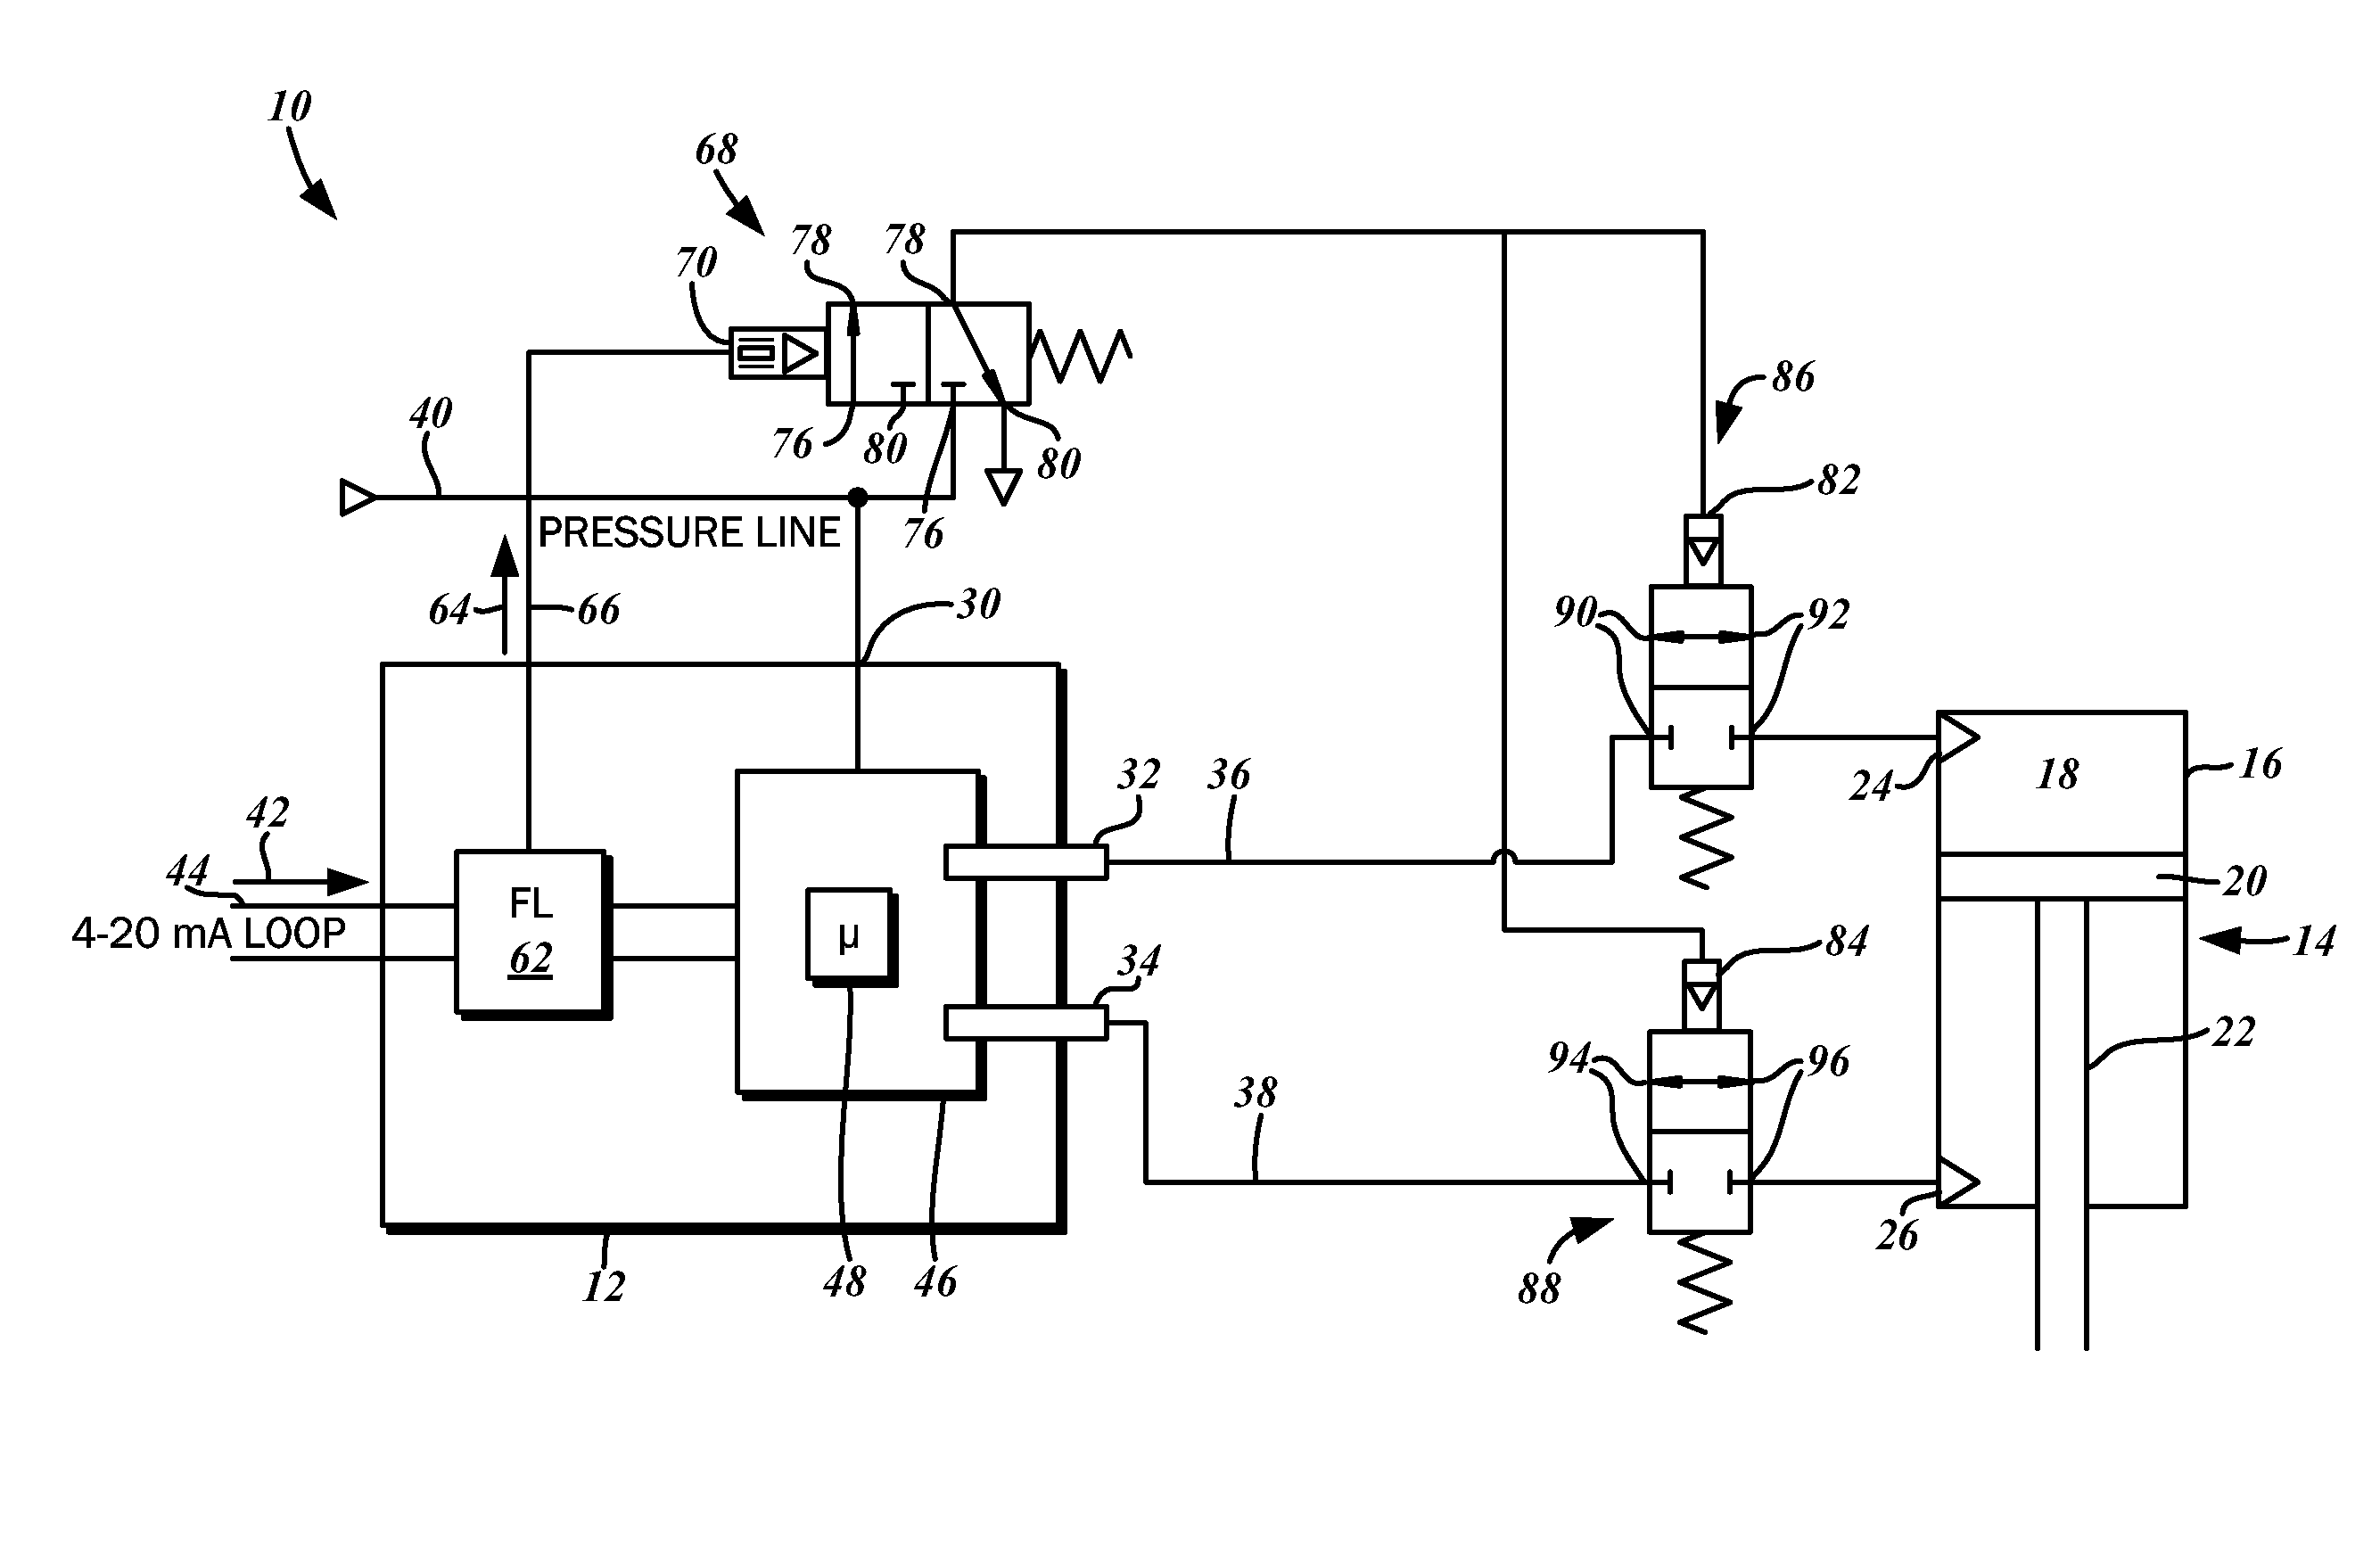 Electro Freeze Wiring Diagram Control Patent Us8517335 Fail Device For Positioner